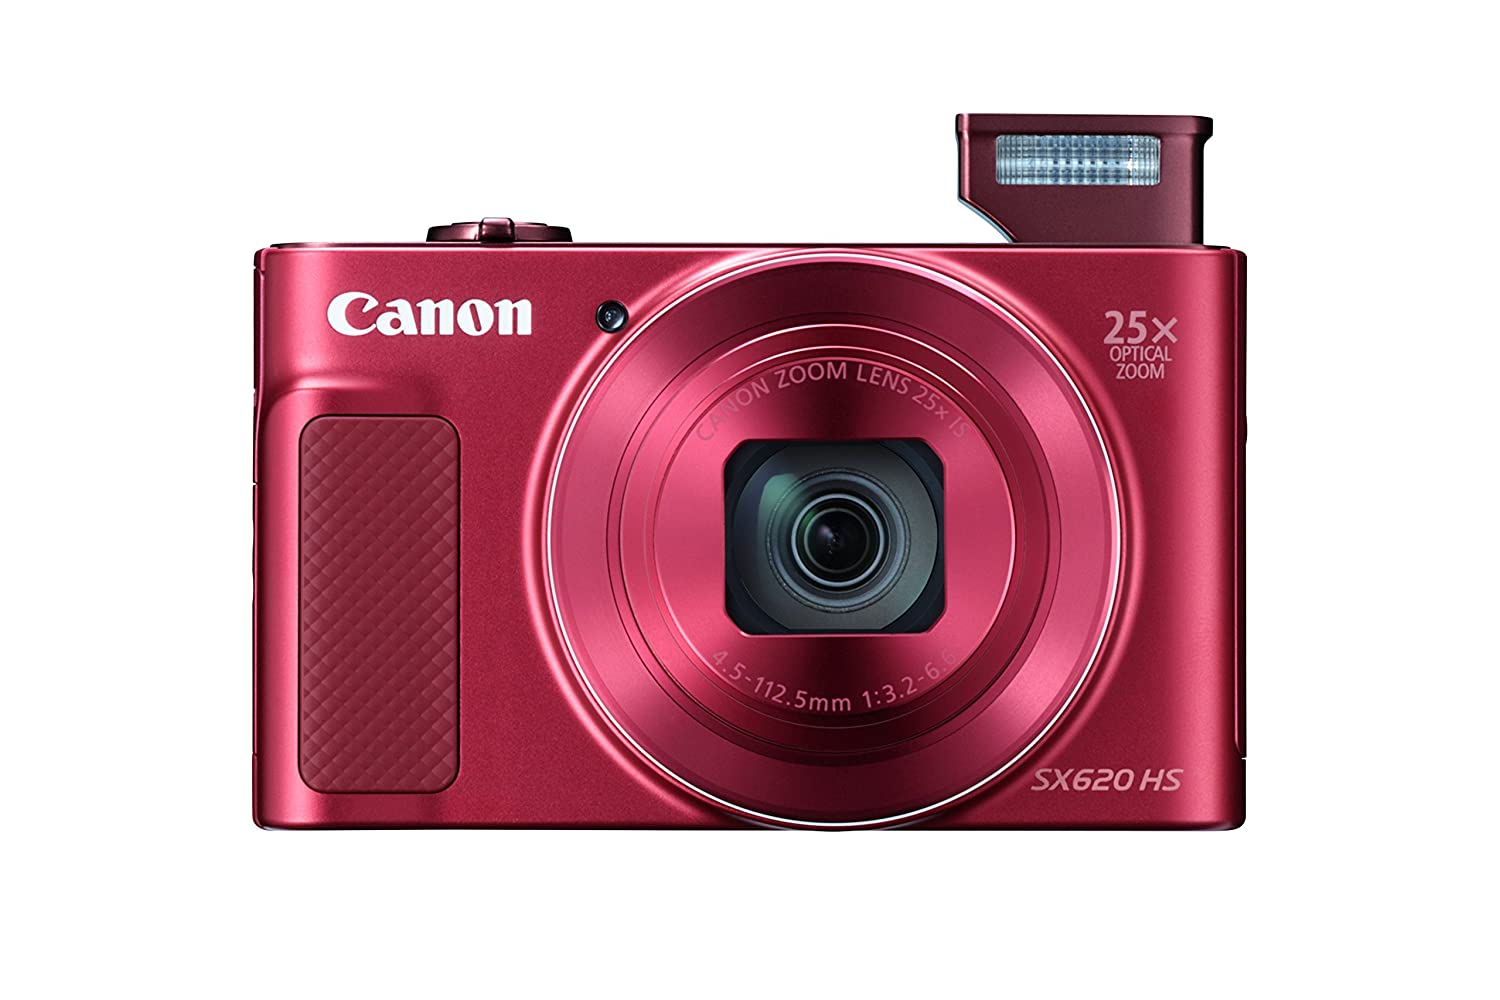 Amazon.com : Canon PowerShot SX620 Digital Camera w/25x Optical Zoom -  Wi-Fi & NFC Enabled (Red) : Camera & Photo